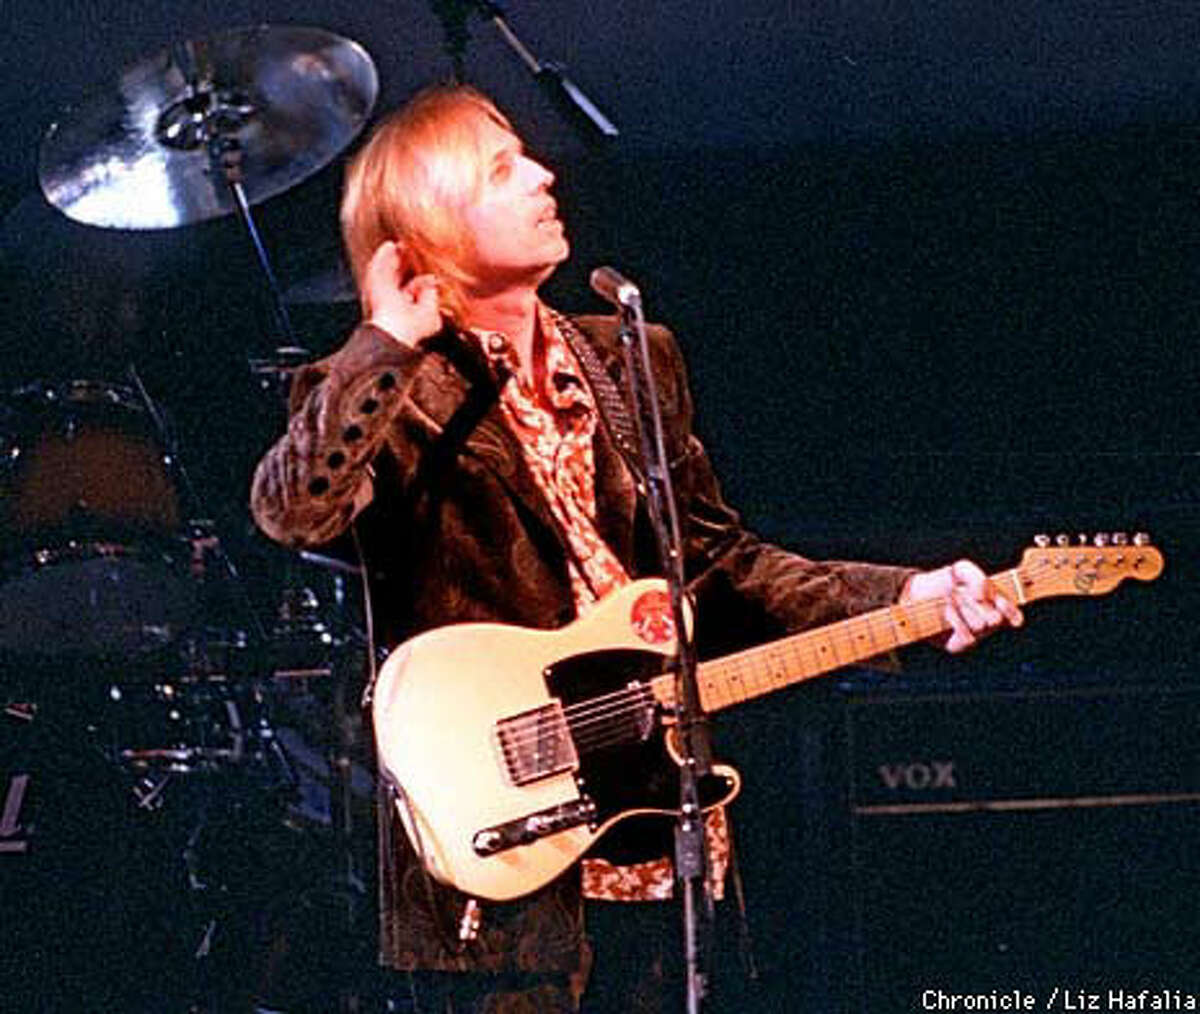 Tom Petty and the Heartbreakers played a 20-show run in 1997 at the Fillmore. Chronicle Photo by Liz Hafalia